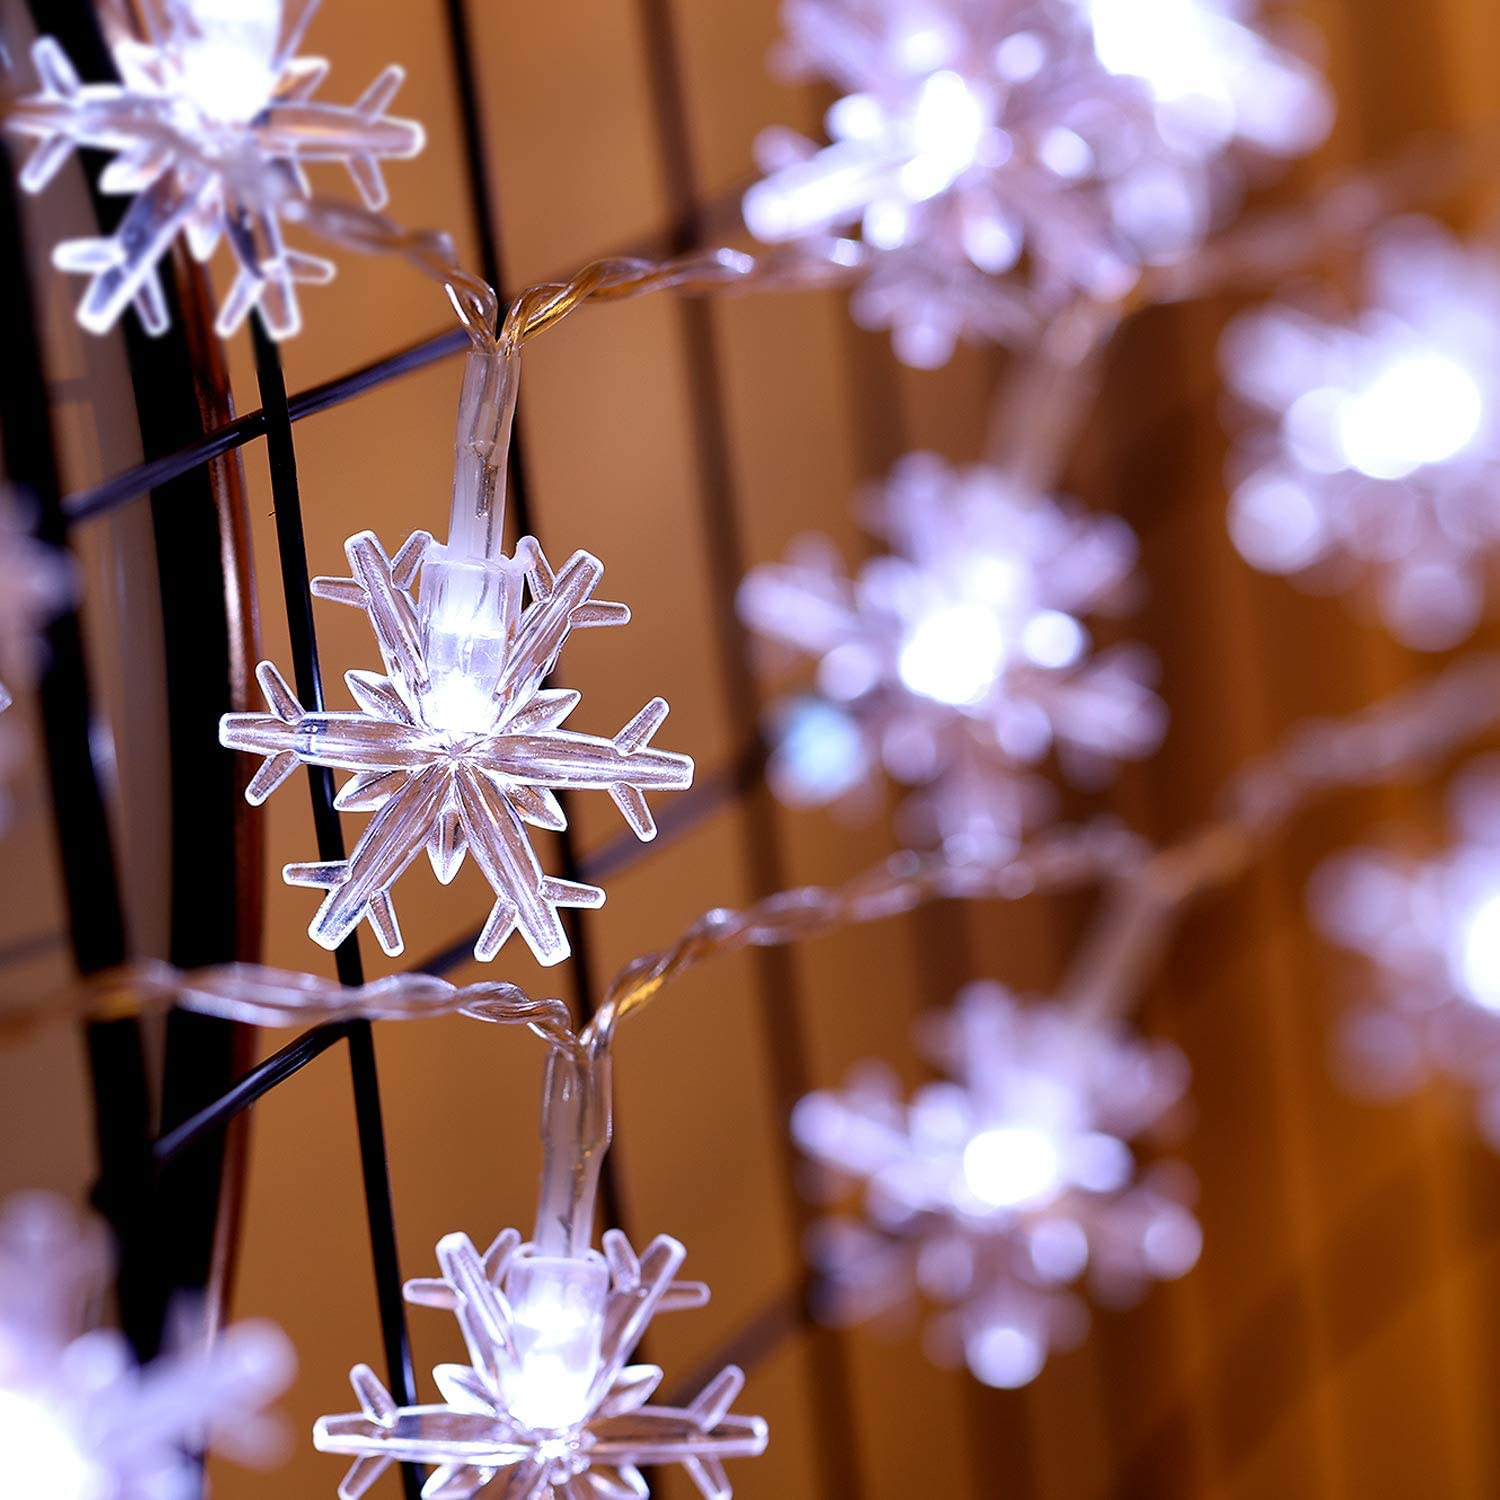 Winter Wonderland Snowflake String Lights, 10ft 30 LED, Battery Powered, 8 Modes, Remote and Timer Control Decoration for Snow Theme Church Wedding Birthday Parties (Cold White)